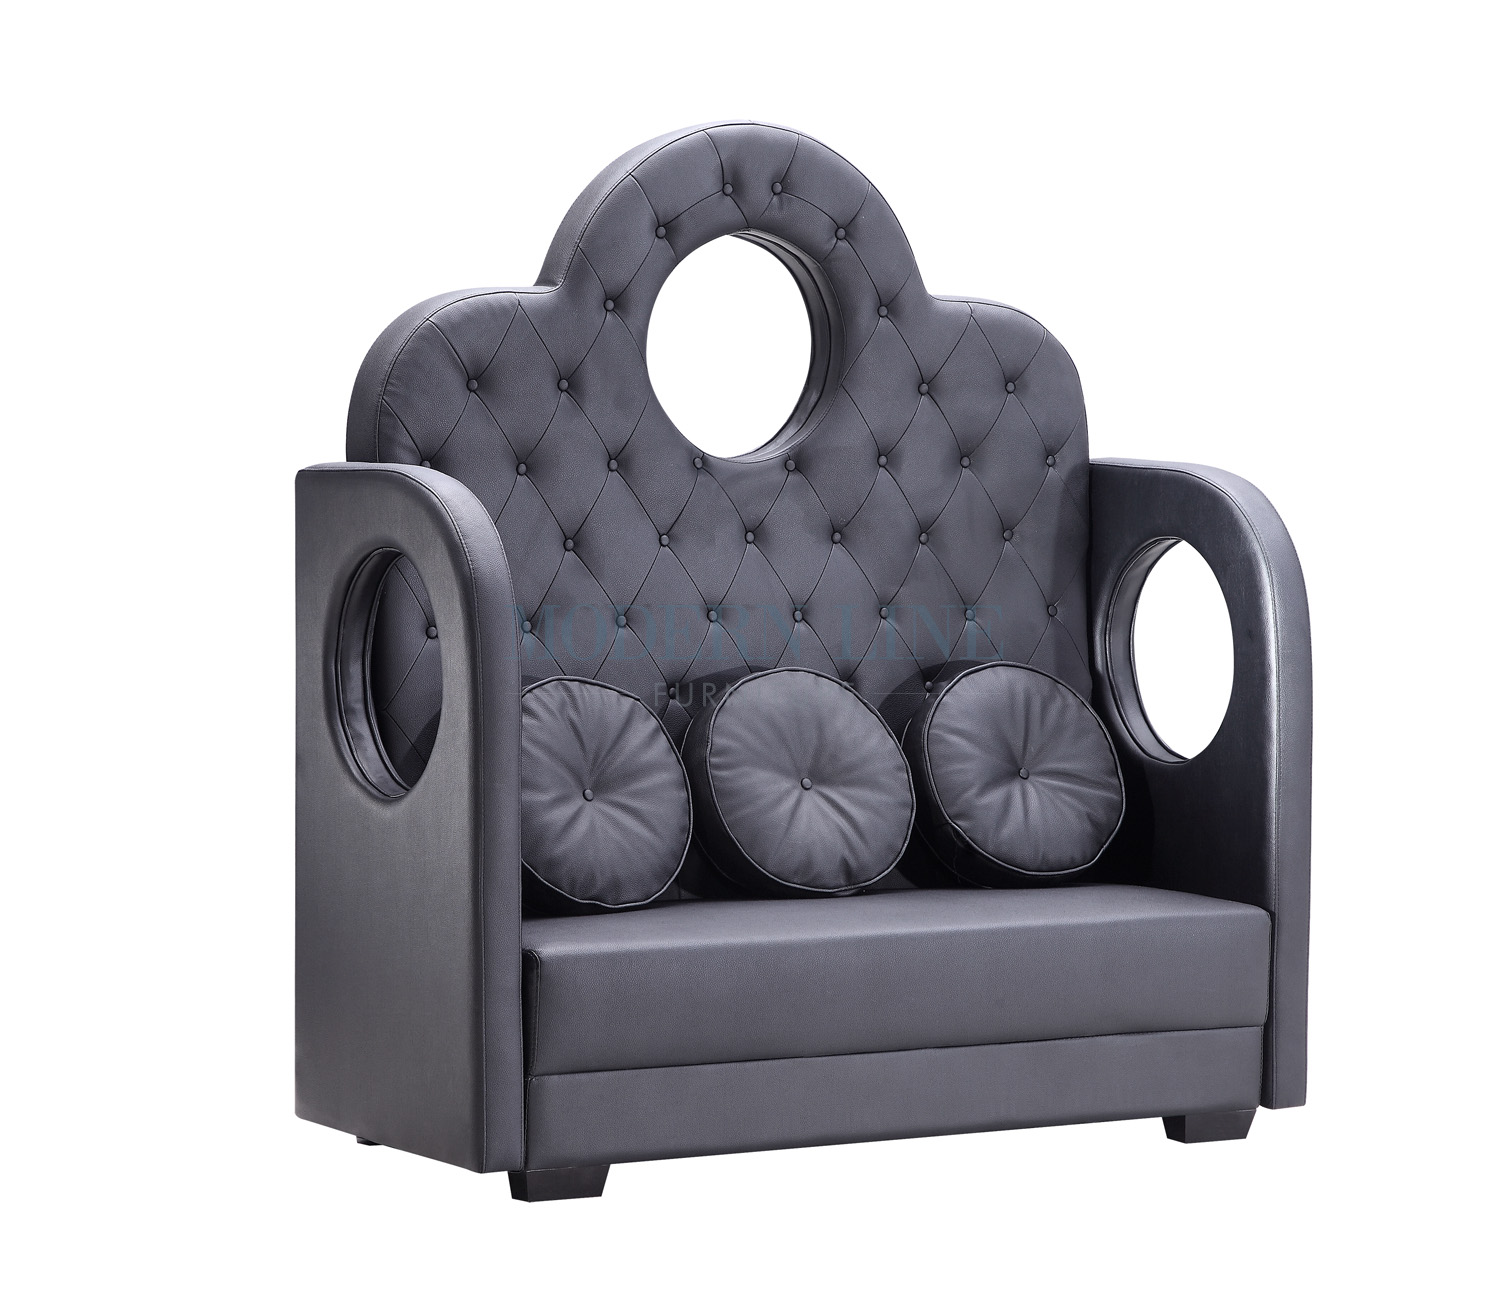 Modern Line Furniture   Commercial Furniture   Custom Made Furniture |  Seating Collection | | | Modern Black Banquette Crown Seater Sofa With  Removable ...